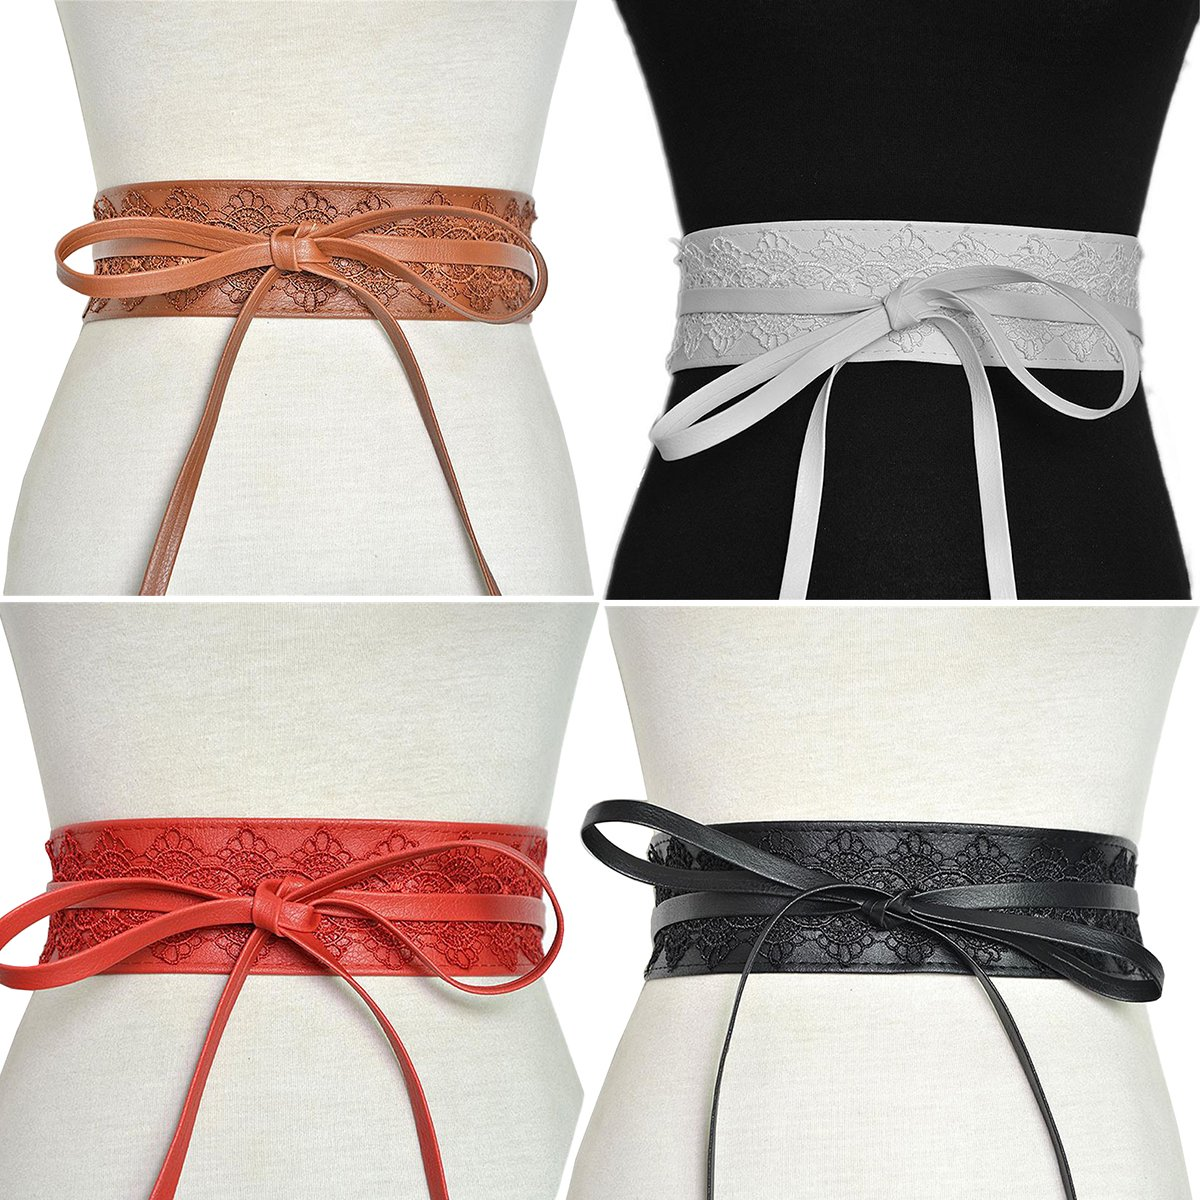 Women's Soft Leather with Lace Waist Belt Bow Tie Wrap Around Boho Corset Fashion Elegant for Dresses (White) by Hello My Life&Apparel (Image #2)